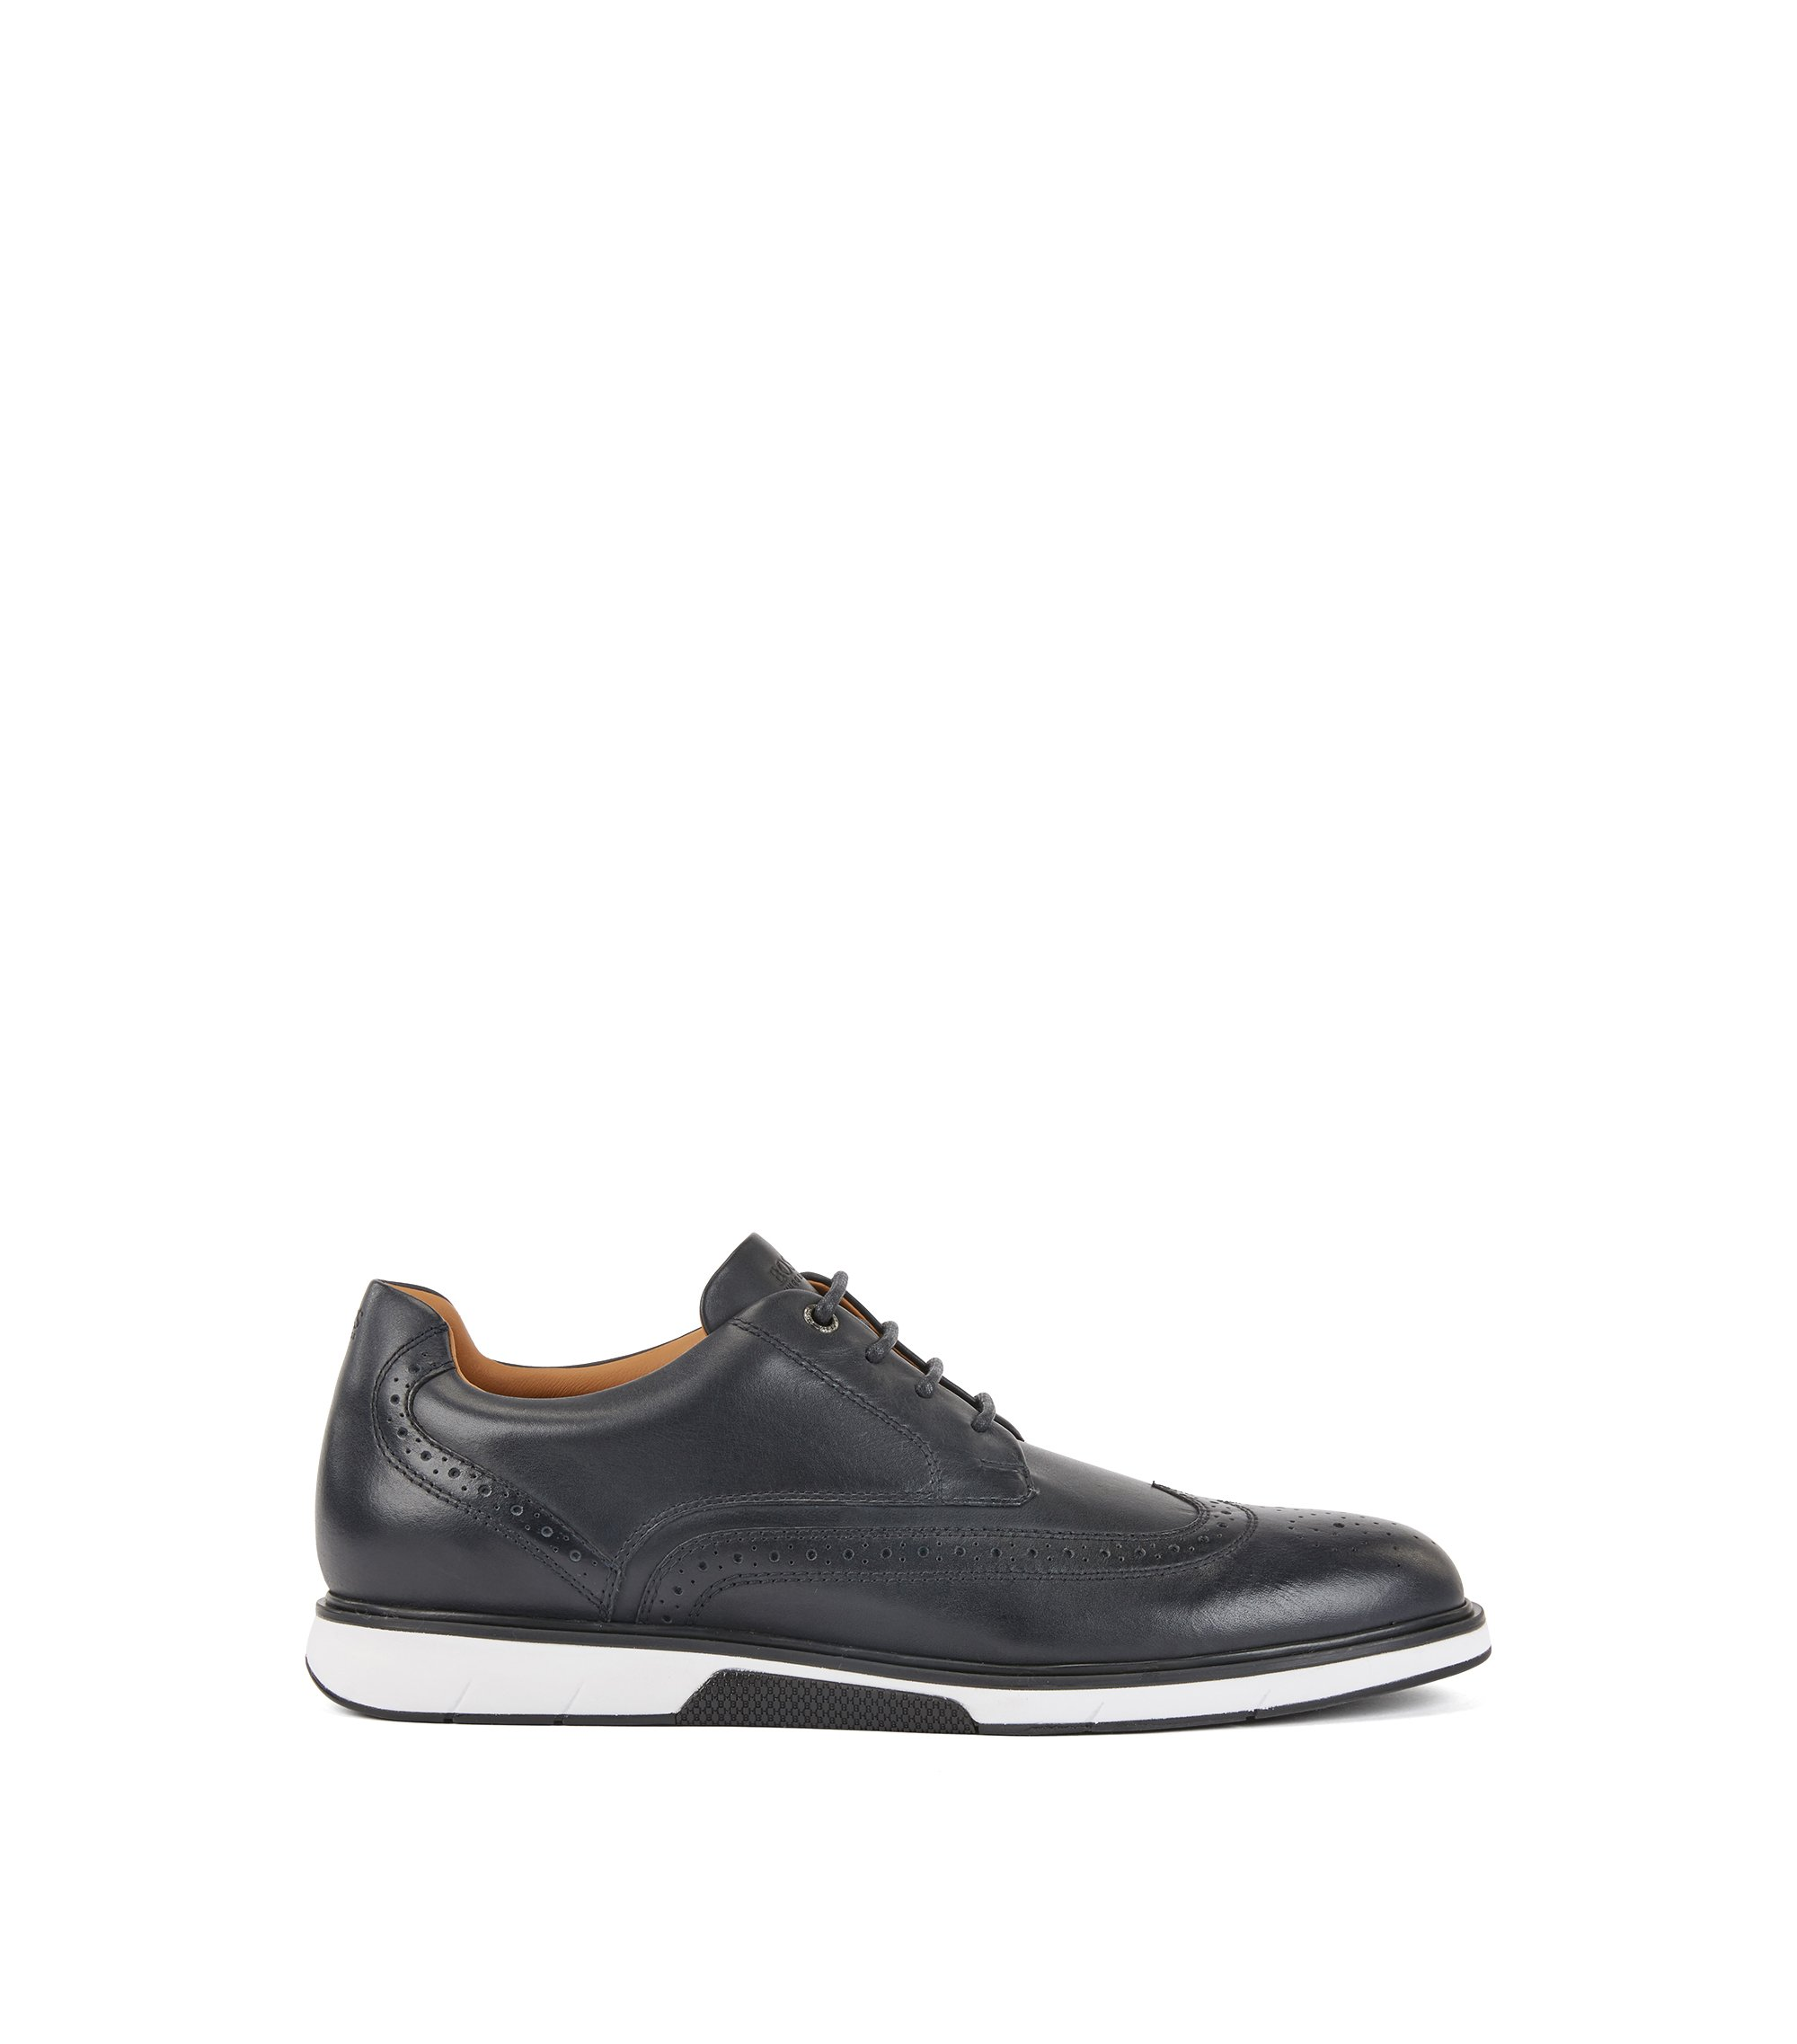 Leather Derby shoes with trainer-style sole, Donkerblauw